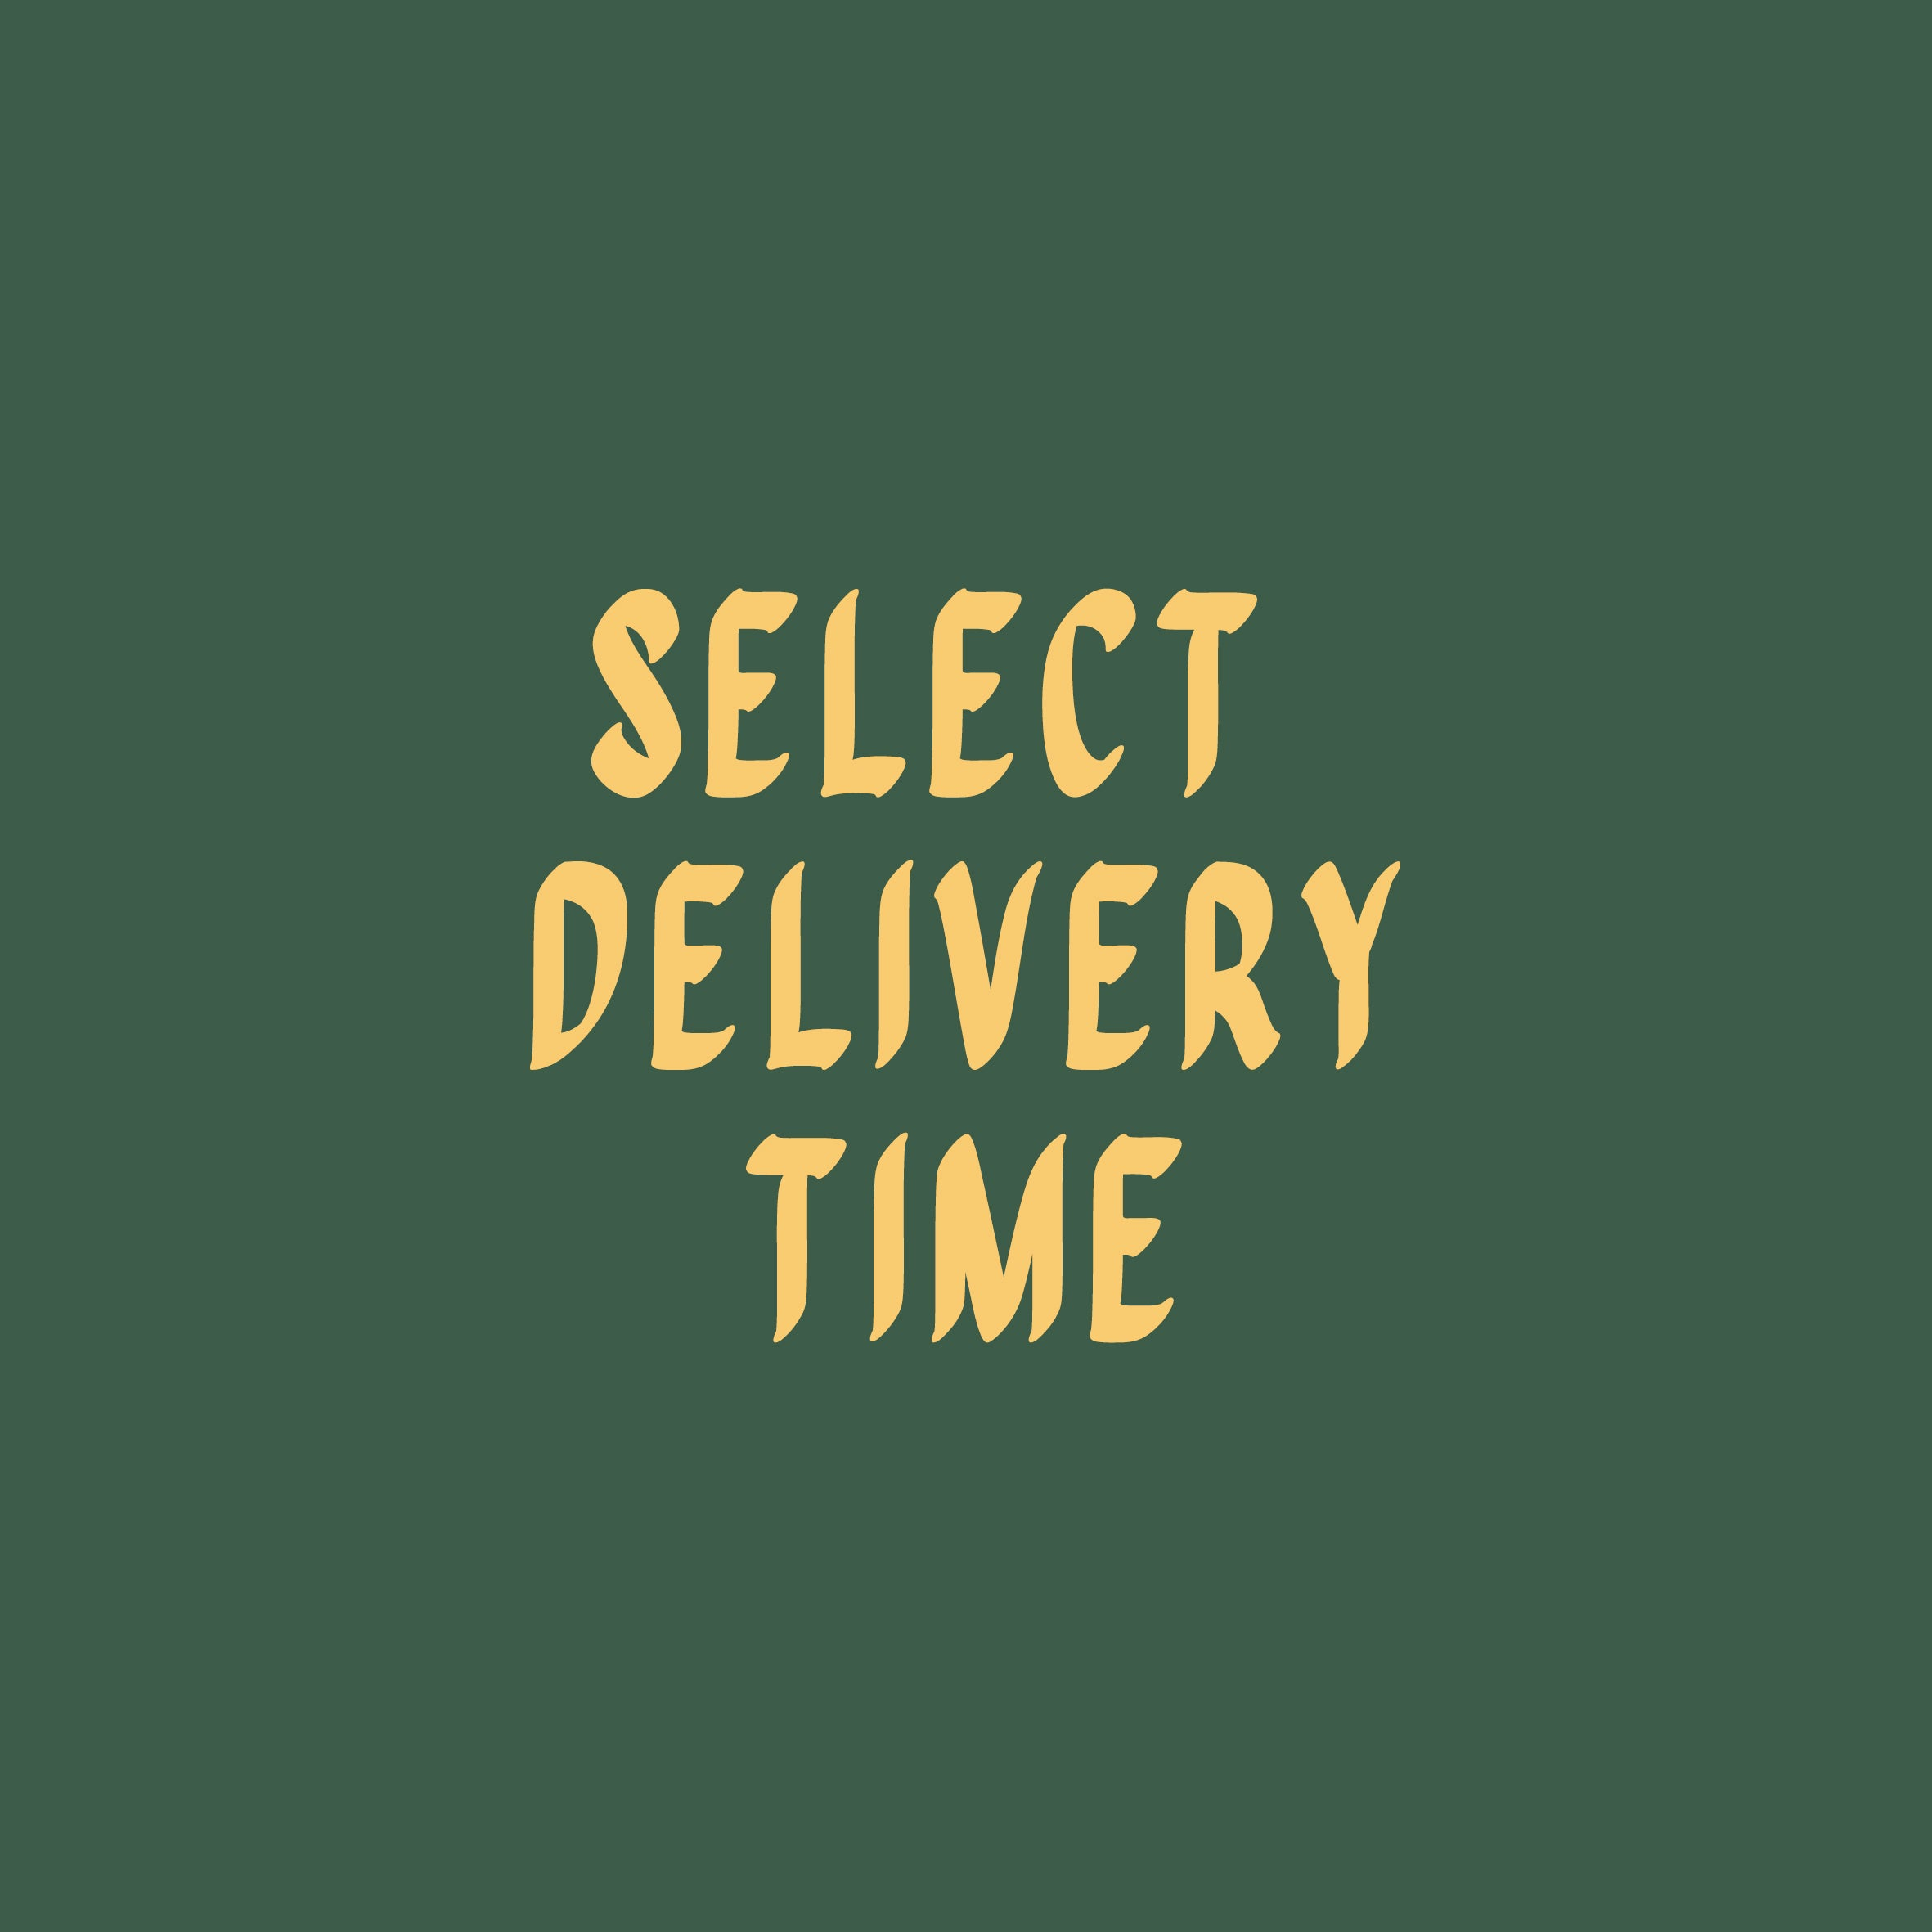 SELECT DELIVERY TIME